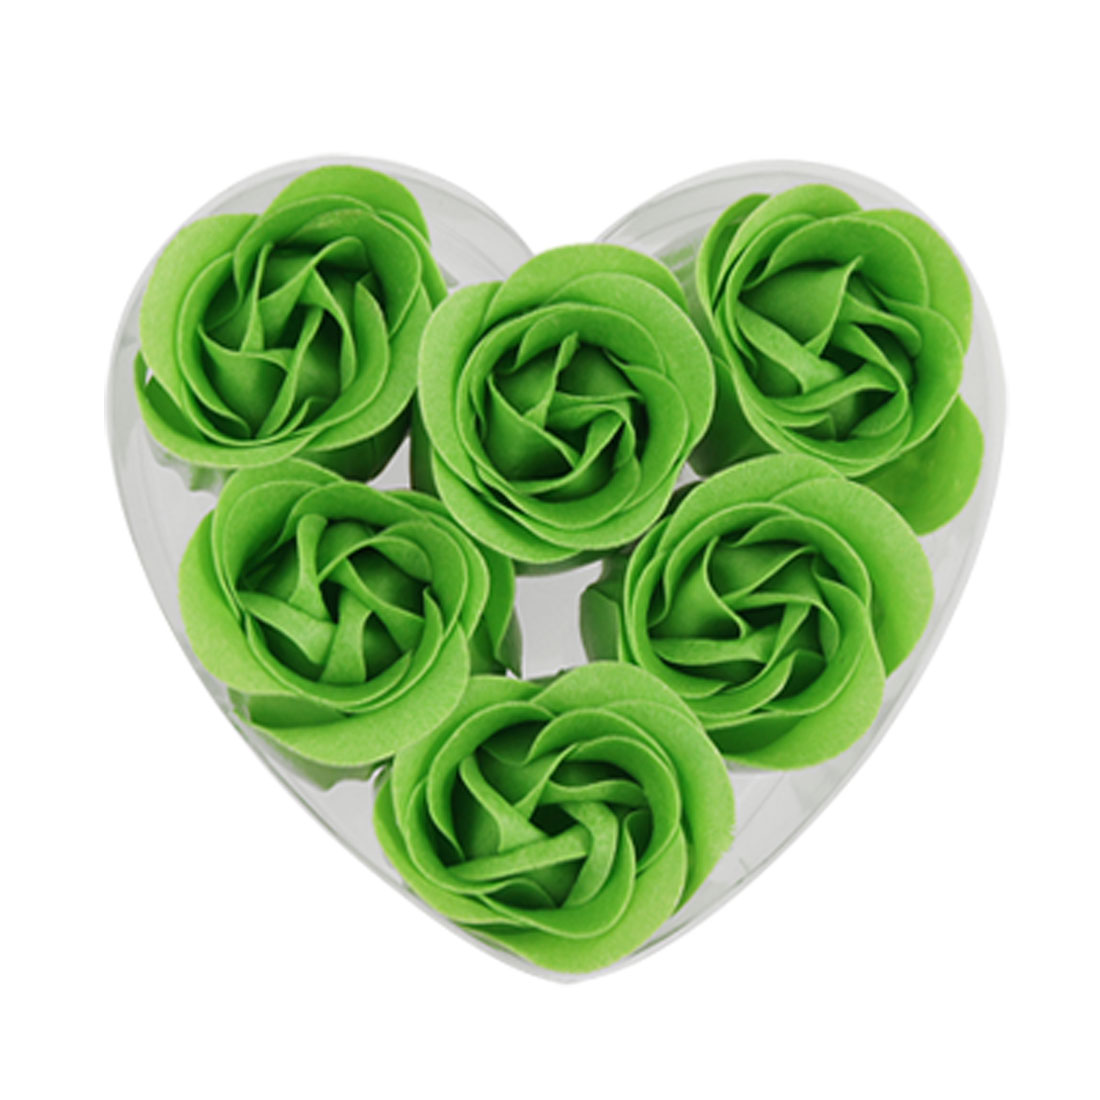 6Pcs Green Fancy Soap Paper Rose Flowers w Heart Shape Box Gift